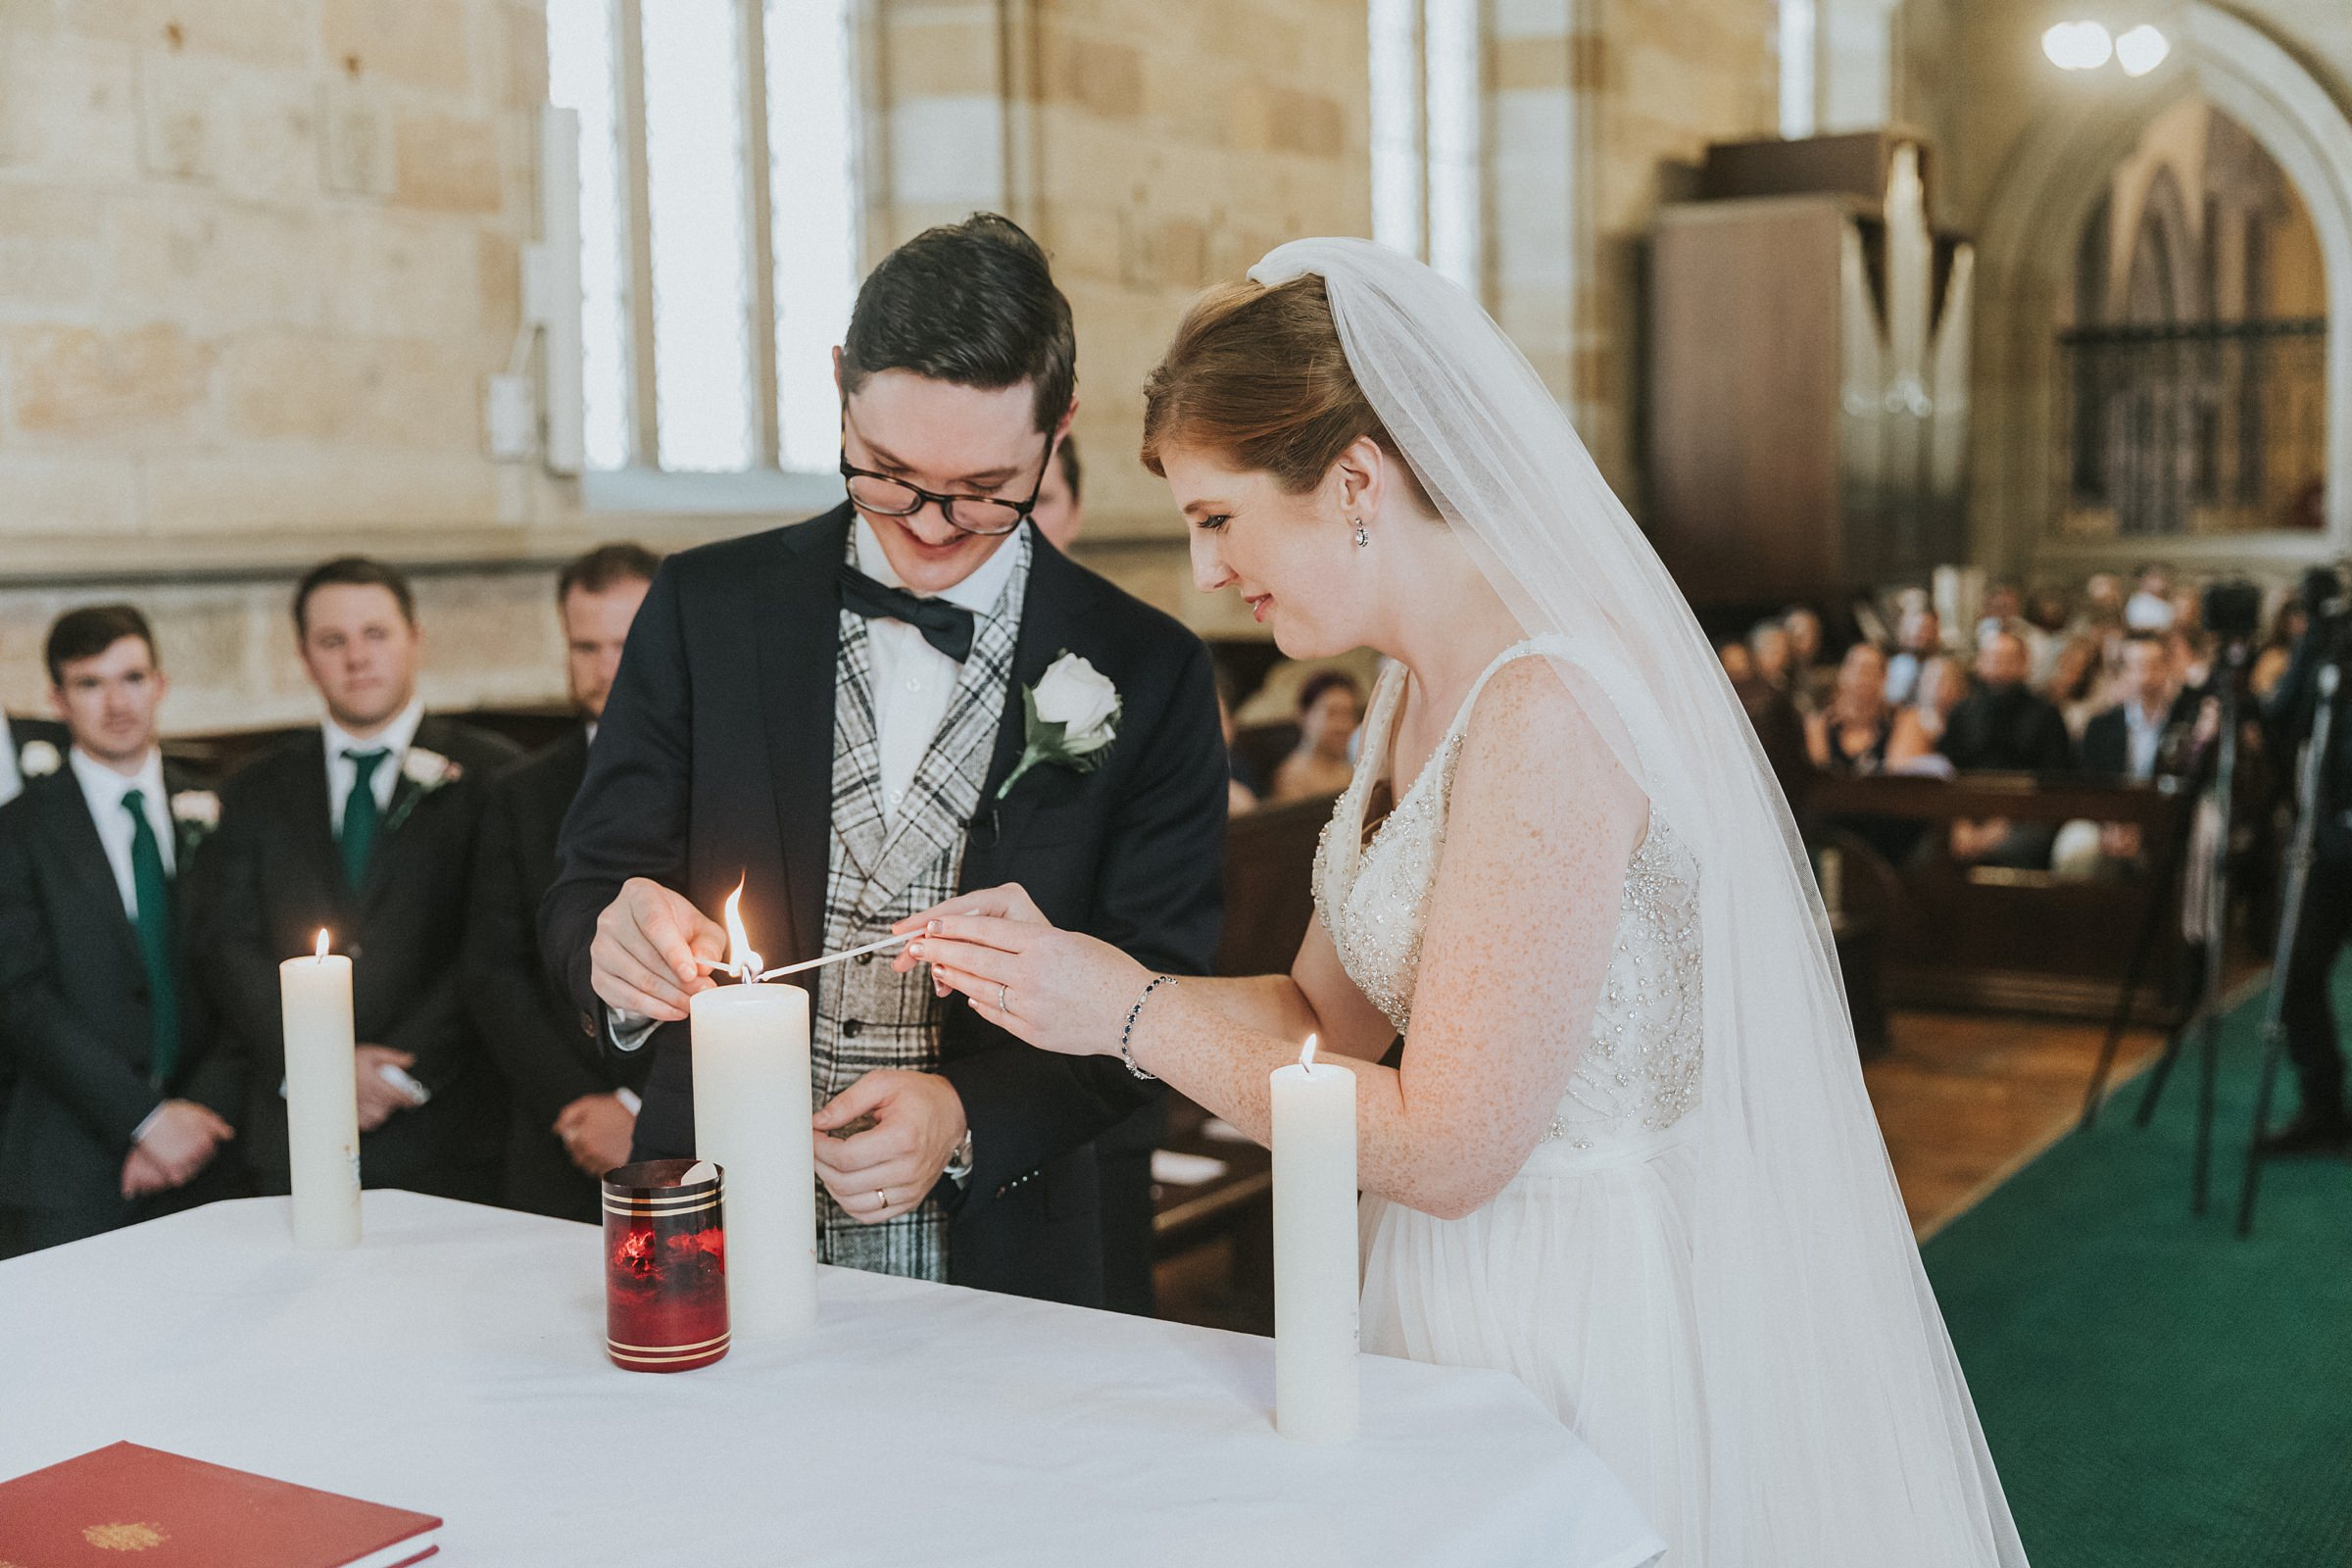 lighting their marriage candle during catholic wedding service